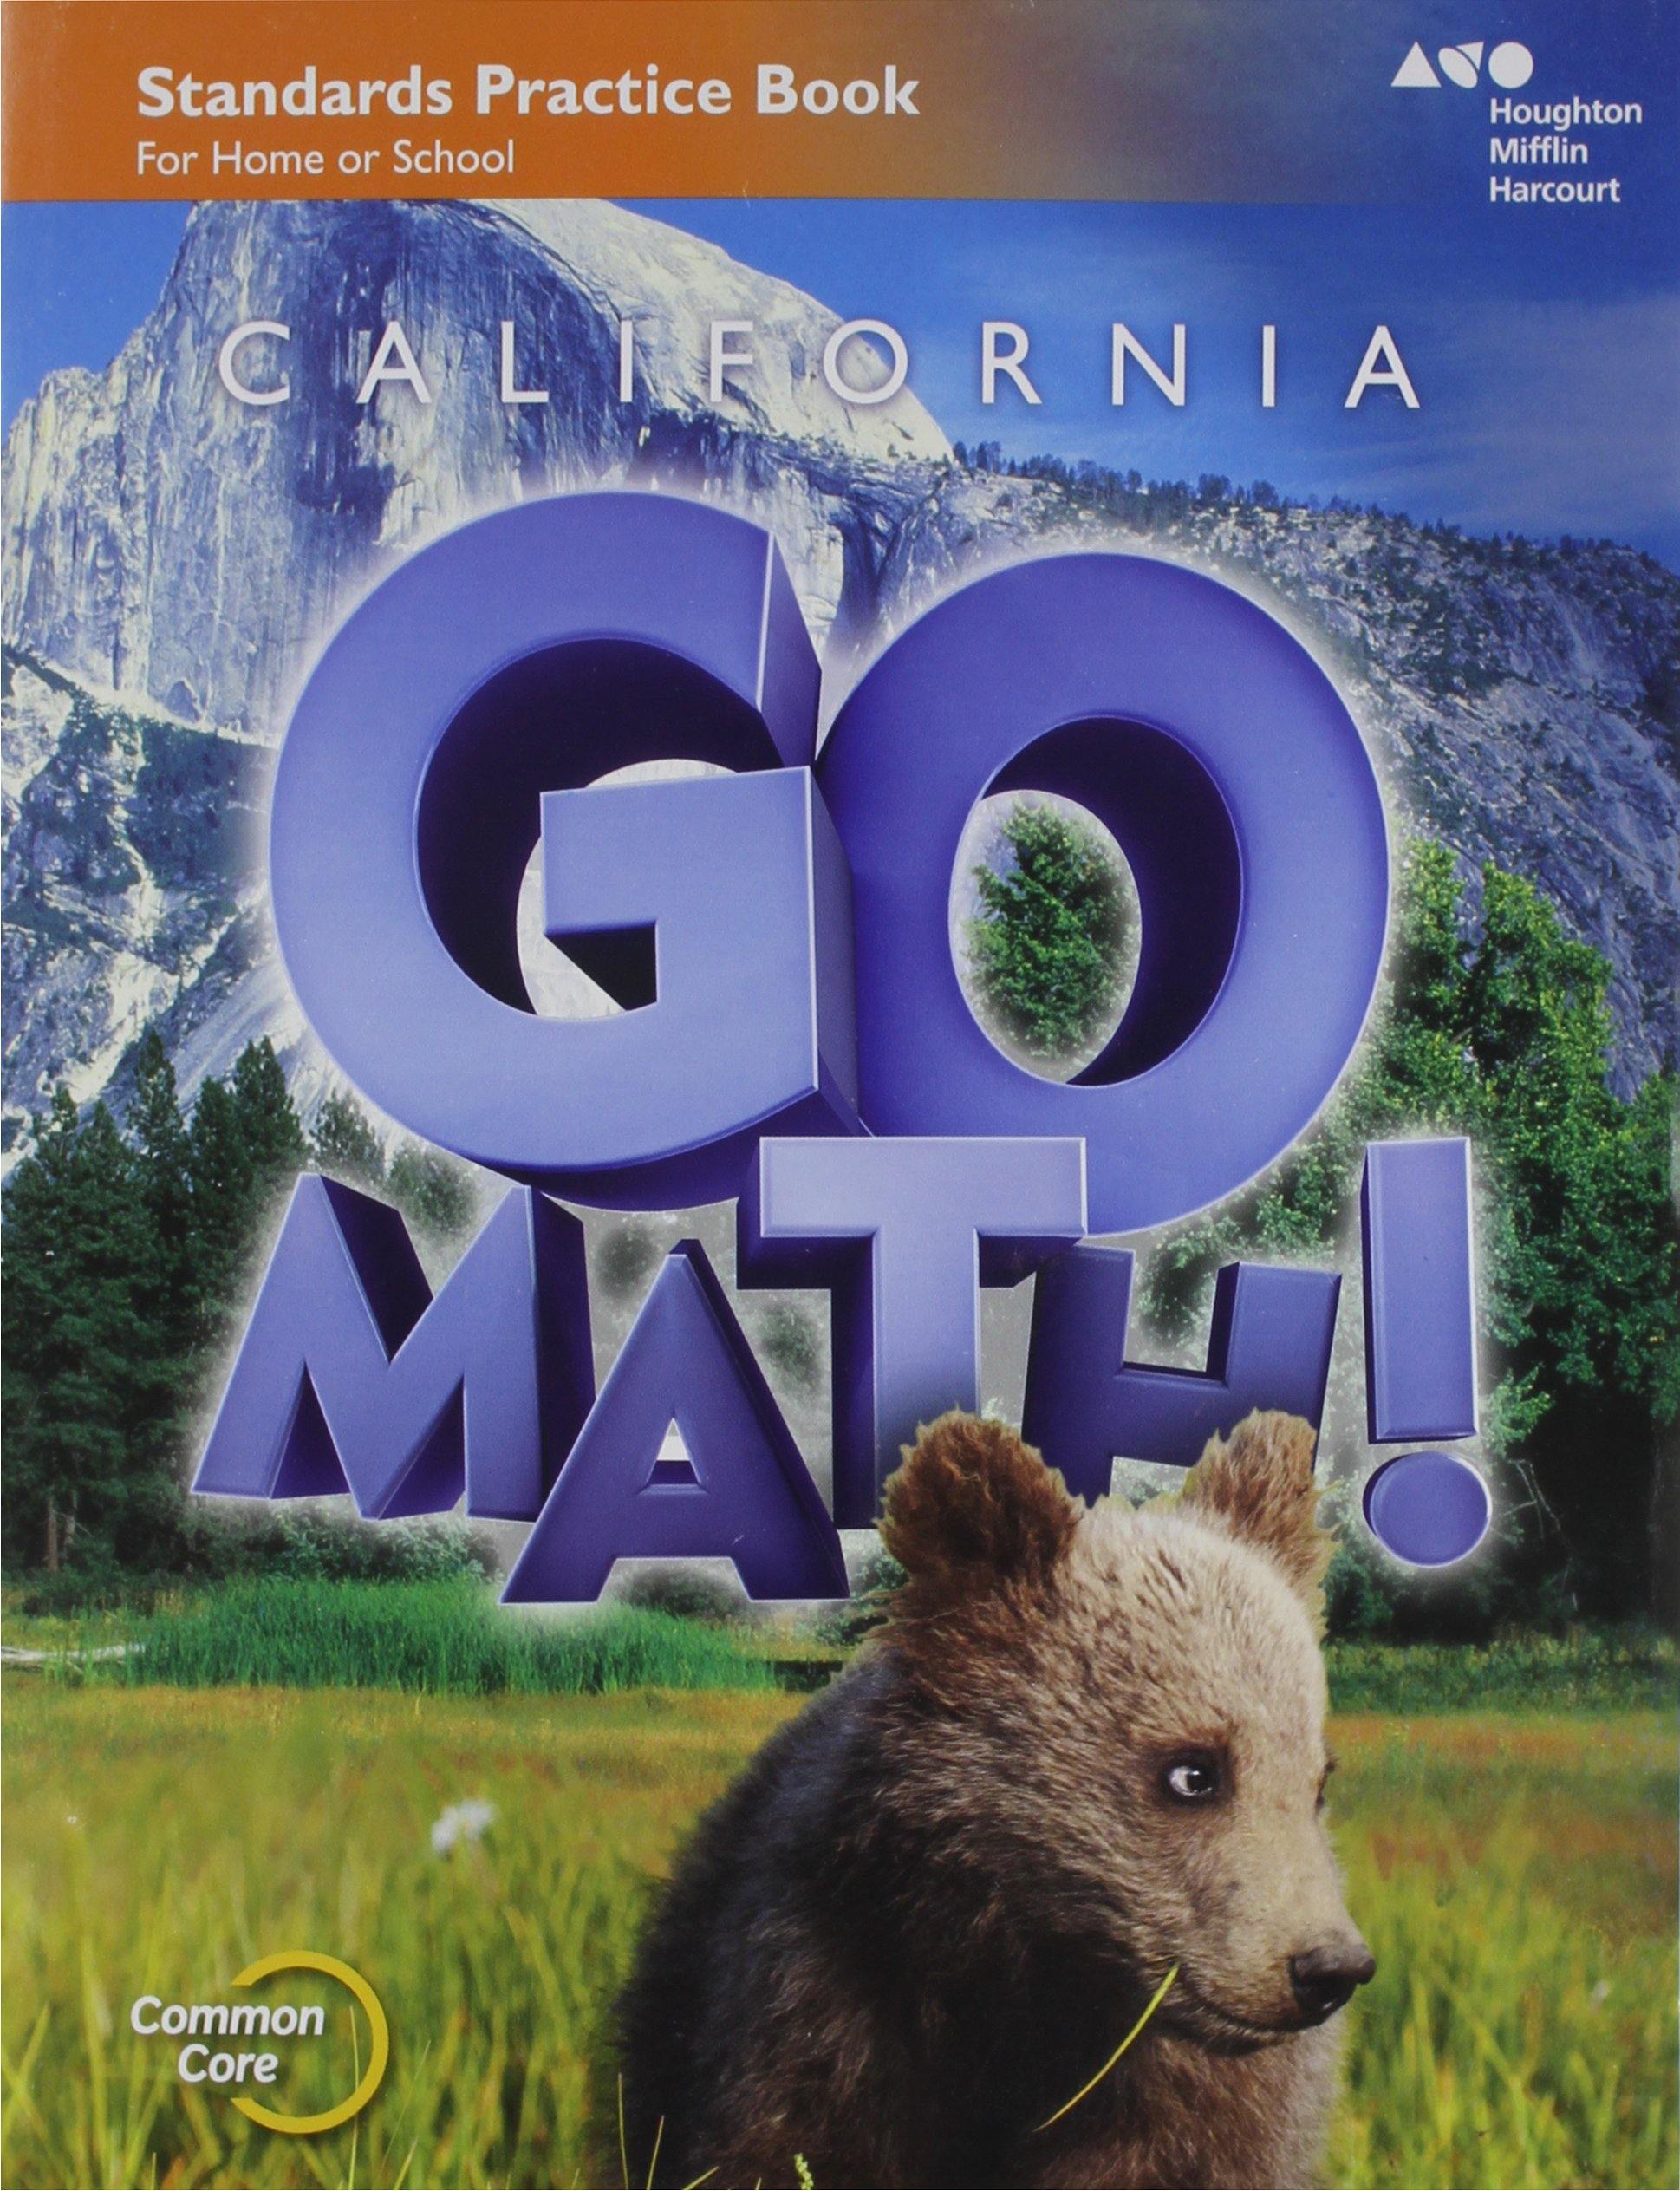 Worksheets Houghton Mifflin Harcourt Math Worksheets go math california practice workbook grade 2 amazon co uk houghton mifflin harcourt 9780544230903 books